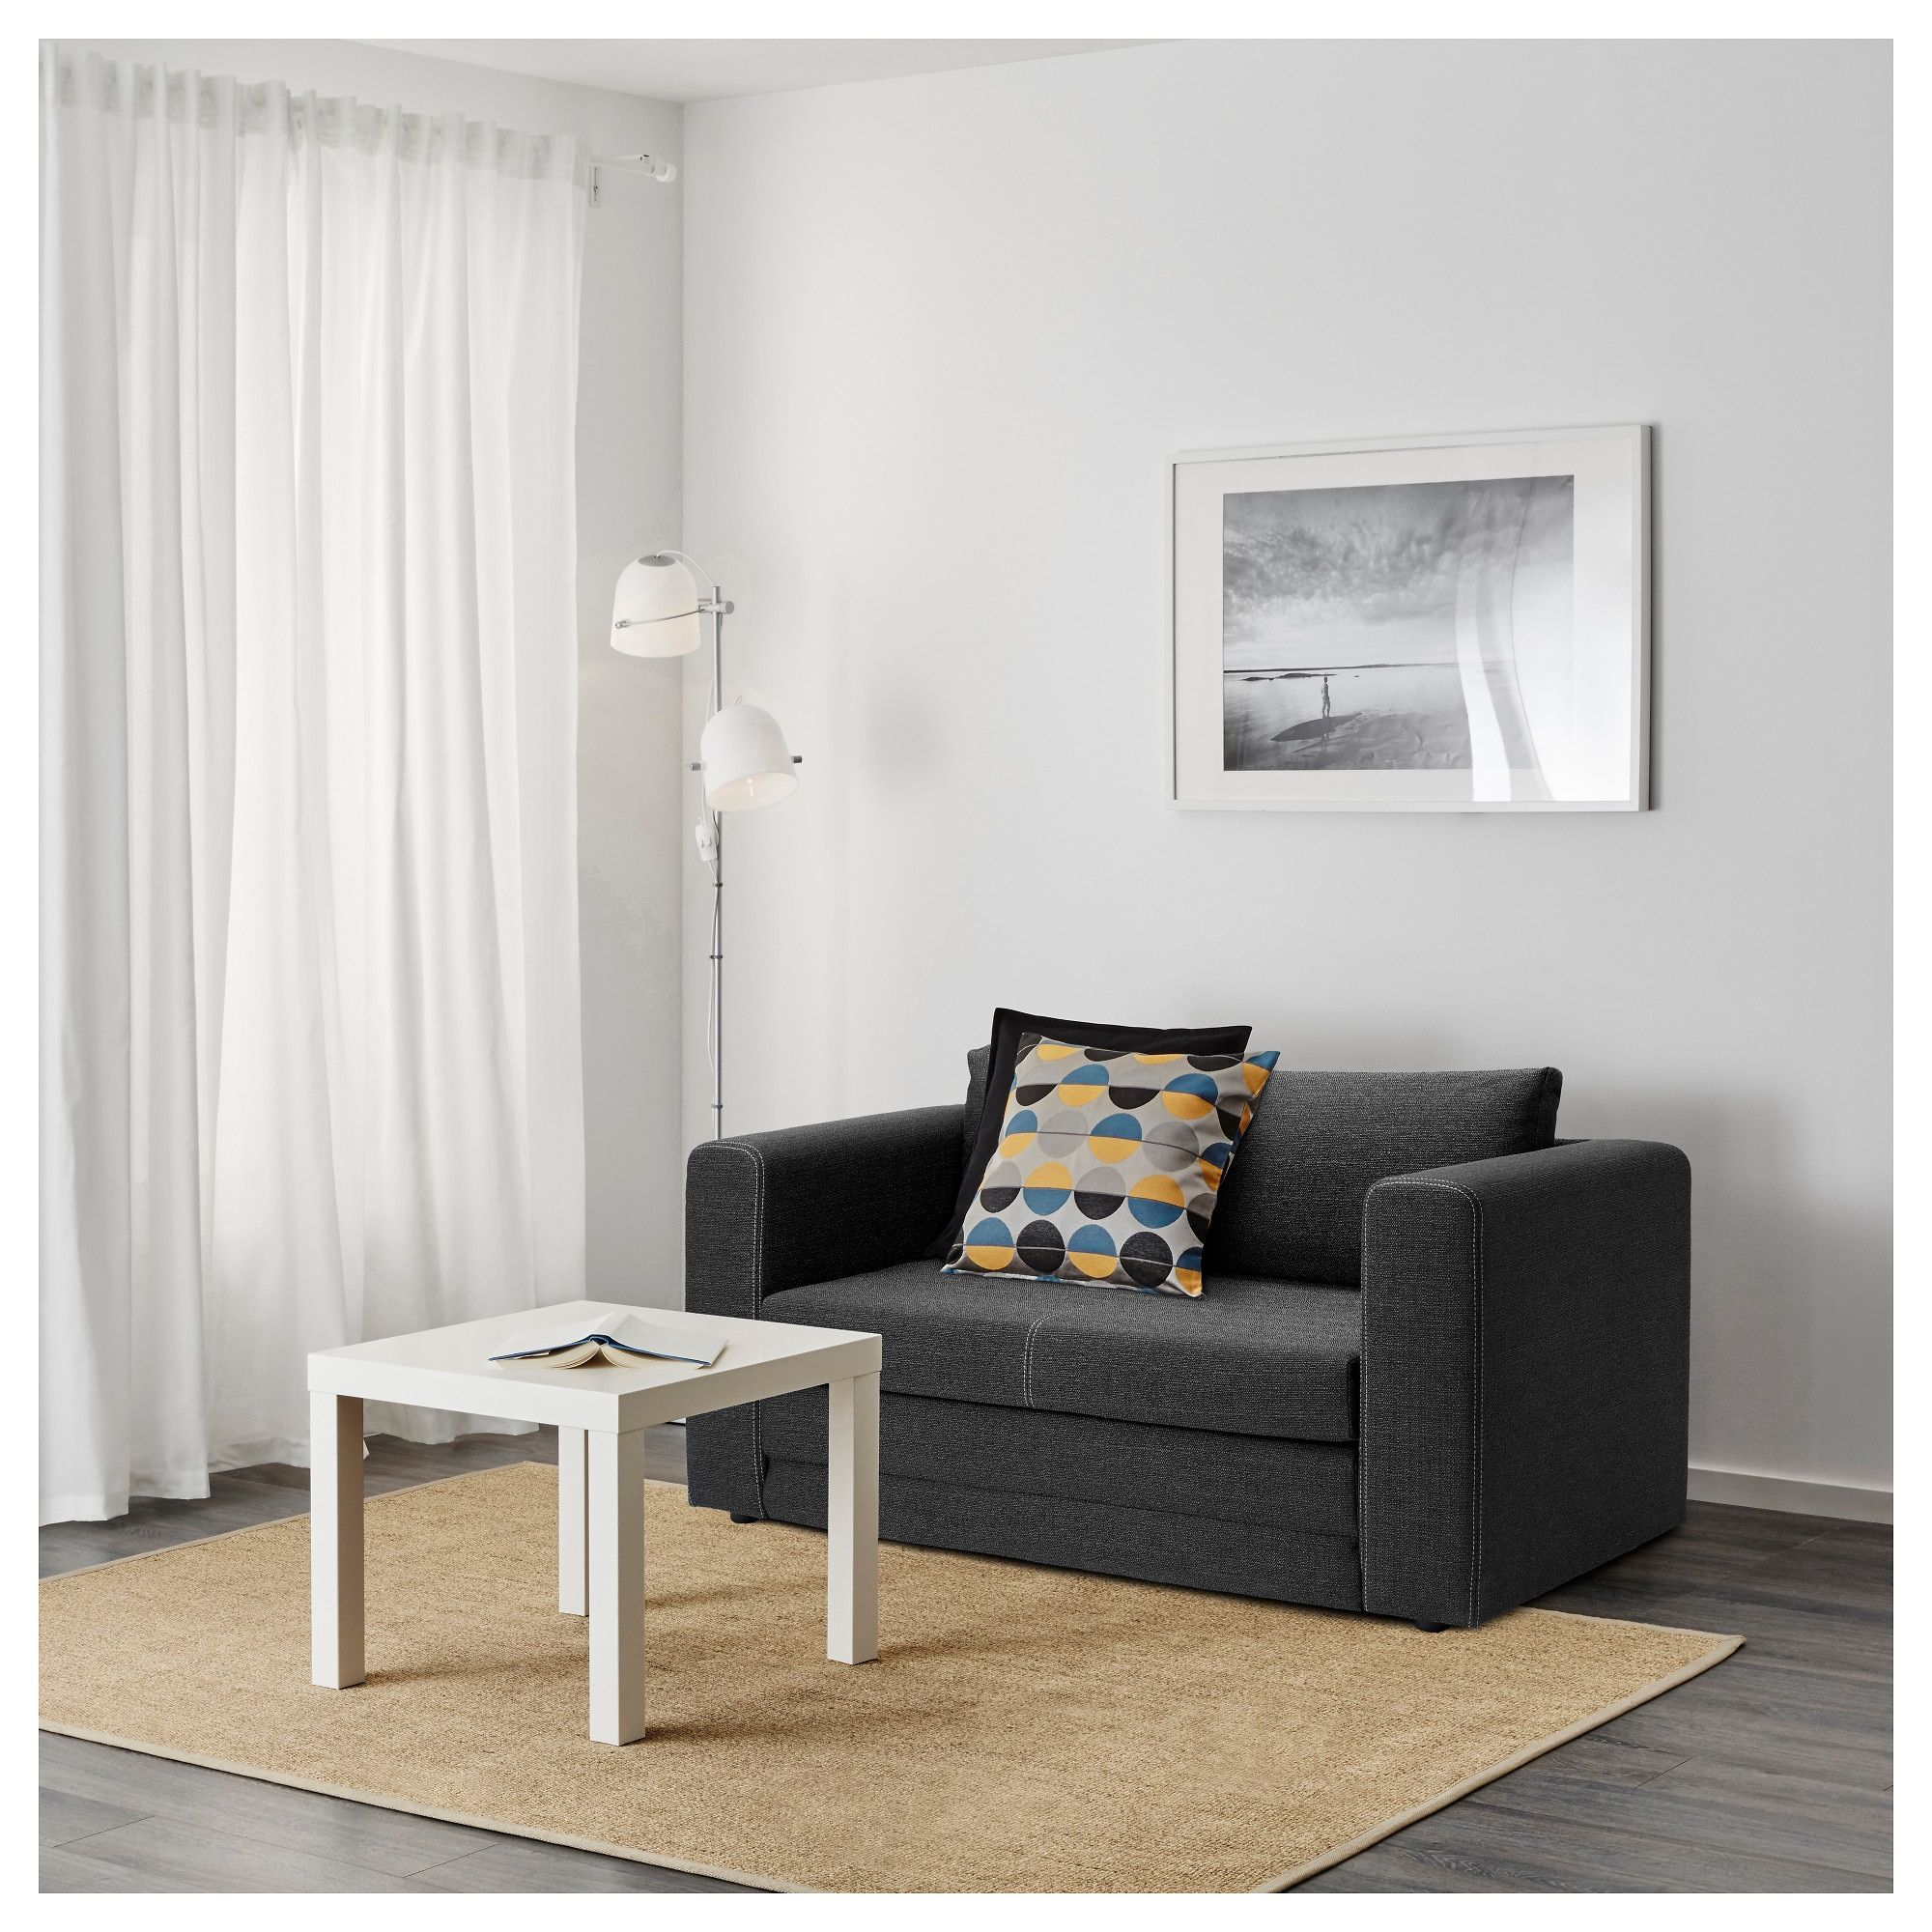 askeby 2er bettsofa grau in 2019 bettsofa sofa und ikea bett